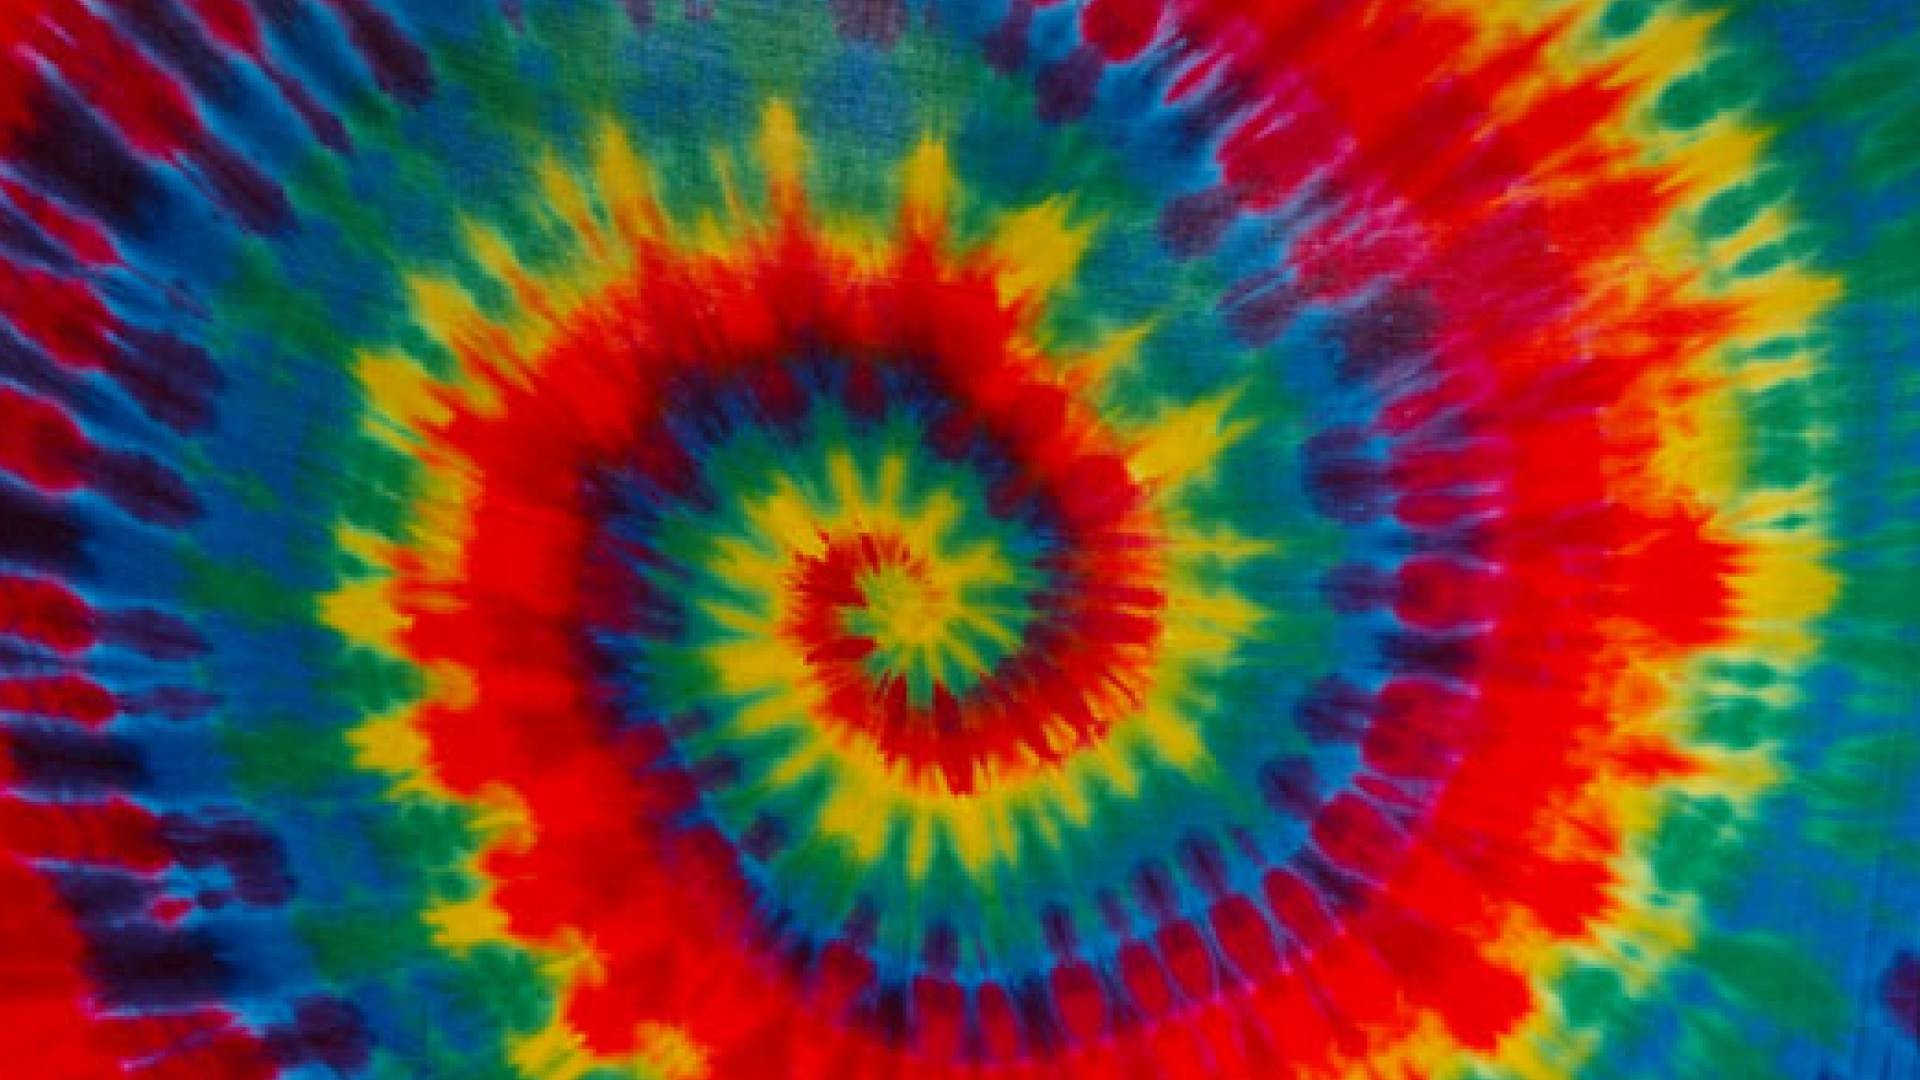 Love Hd Wallpapers Zip File : Tie Dye Wallpapers ??